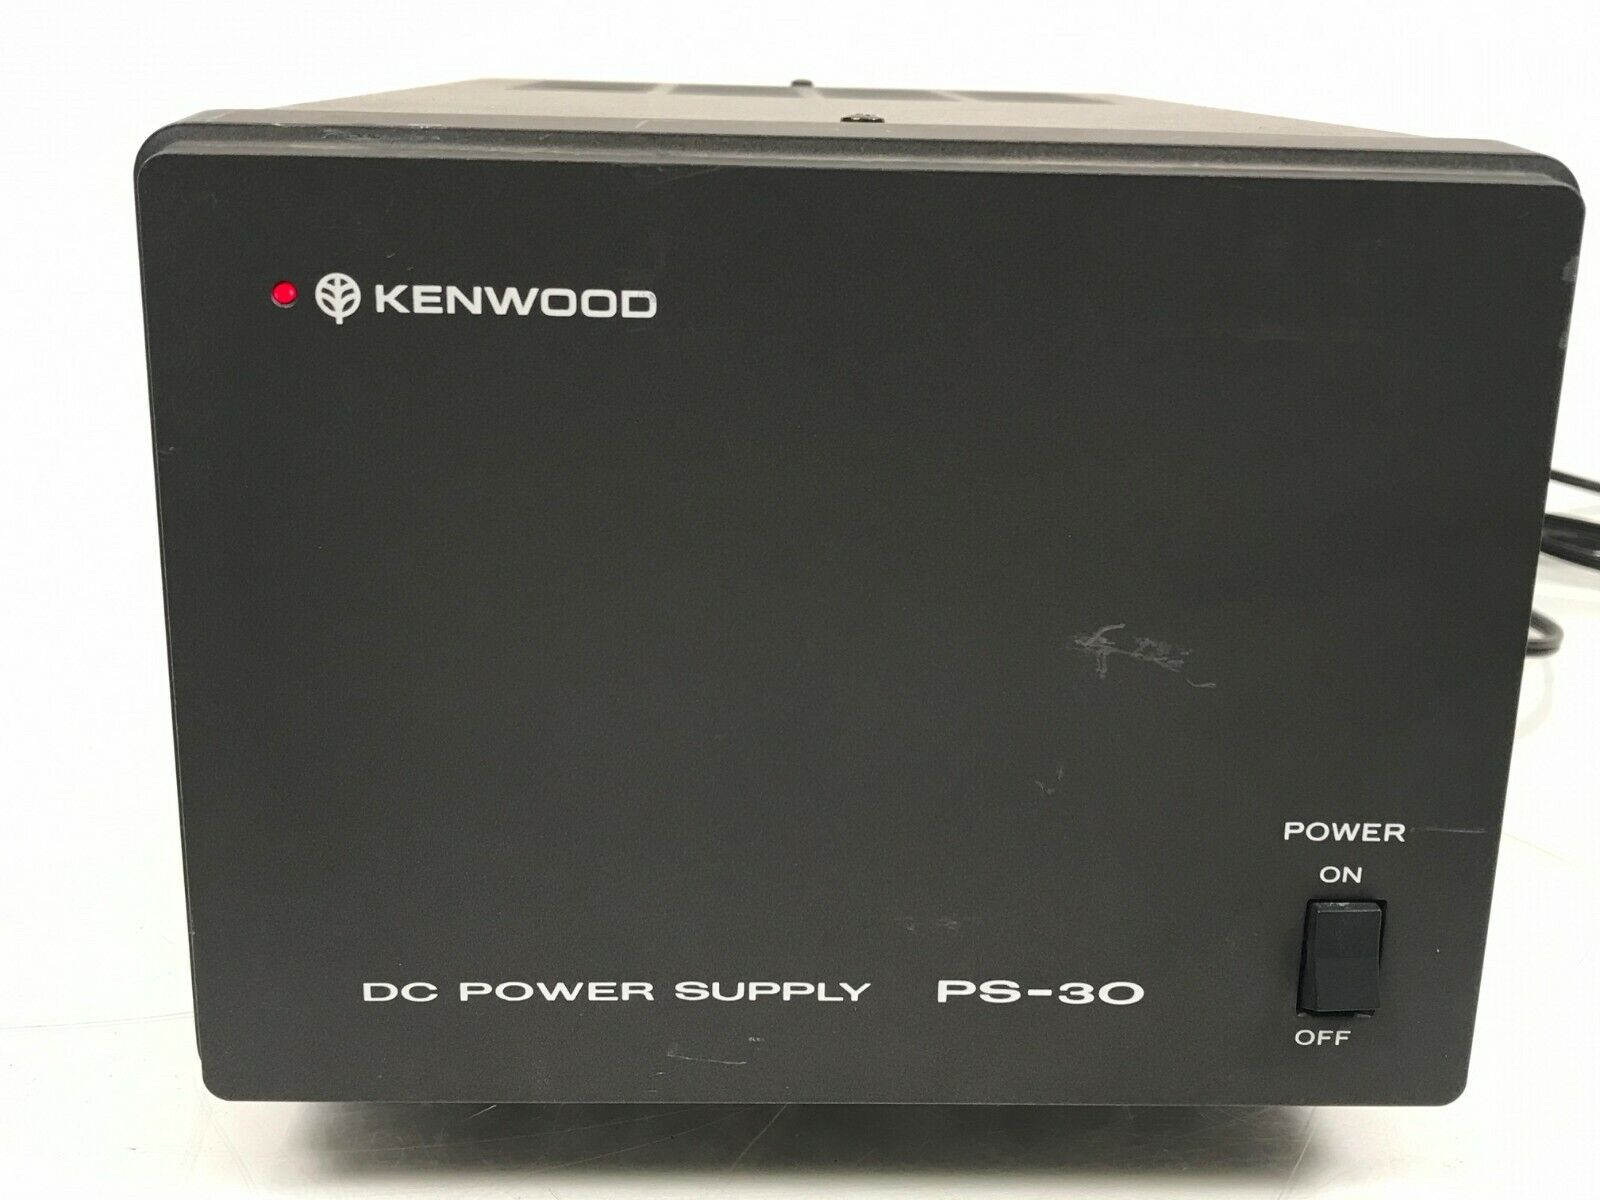 Kenwood PS-30 Power Supply for Ham Transceiver. Buy it now for 249.99